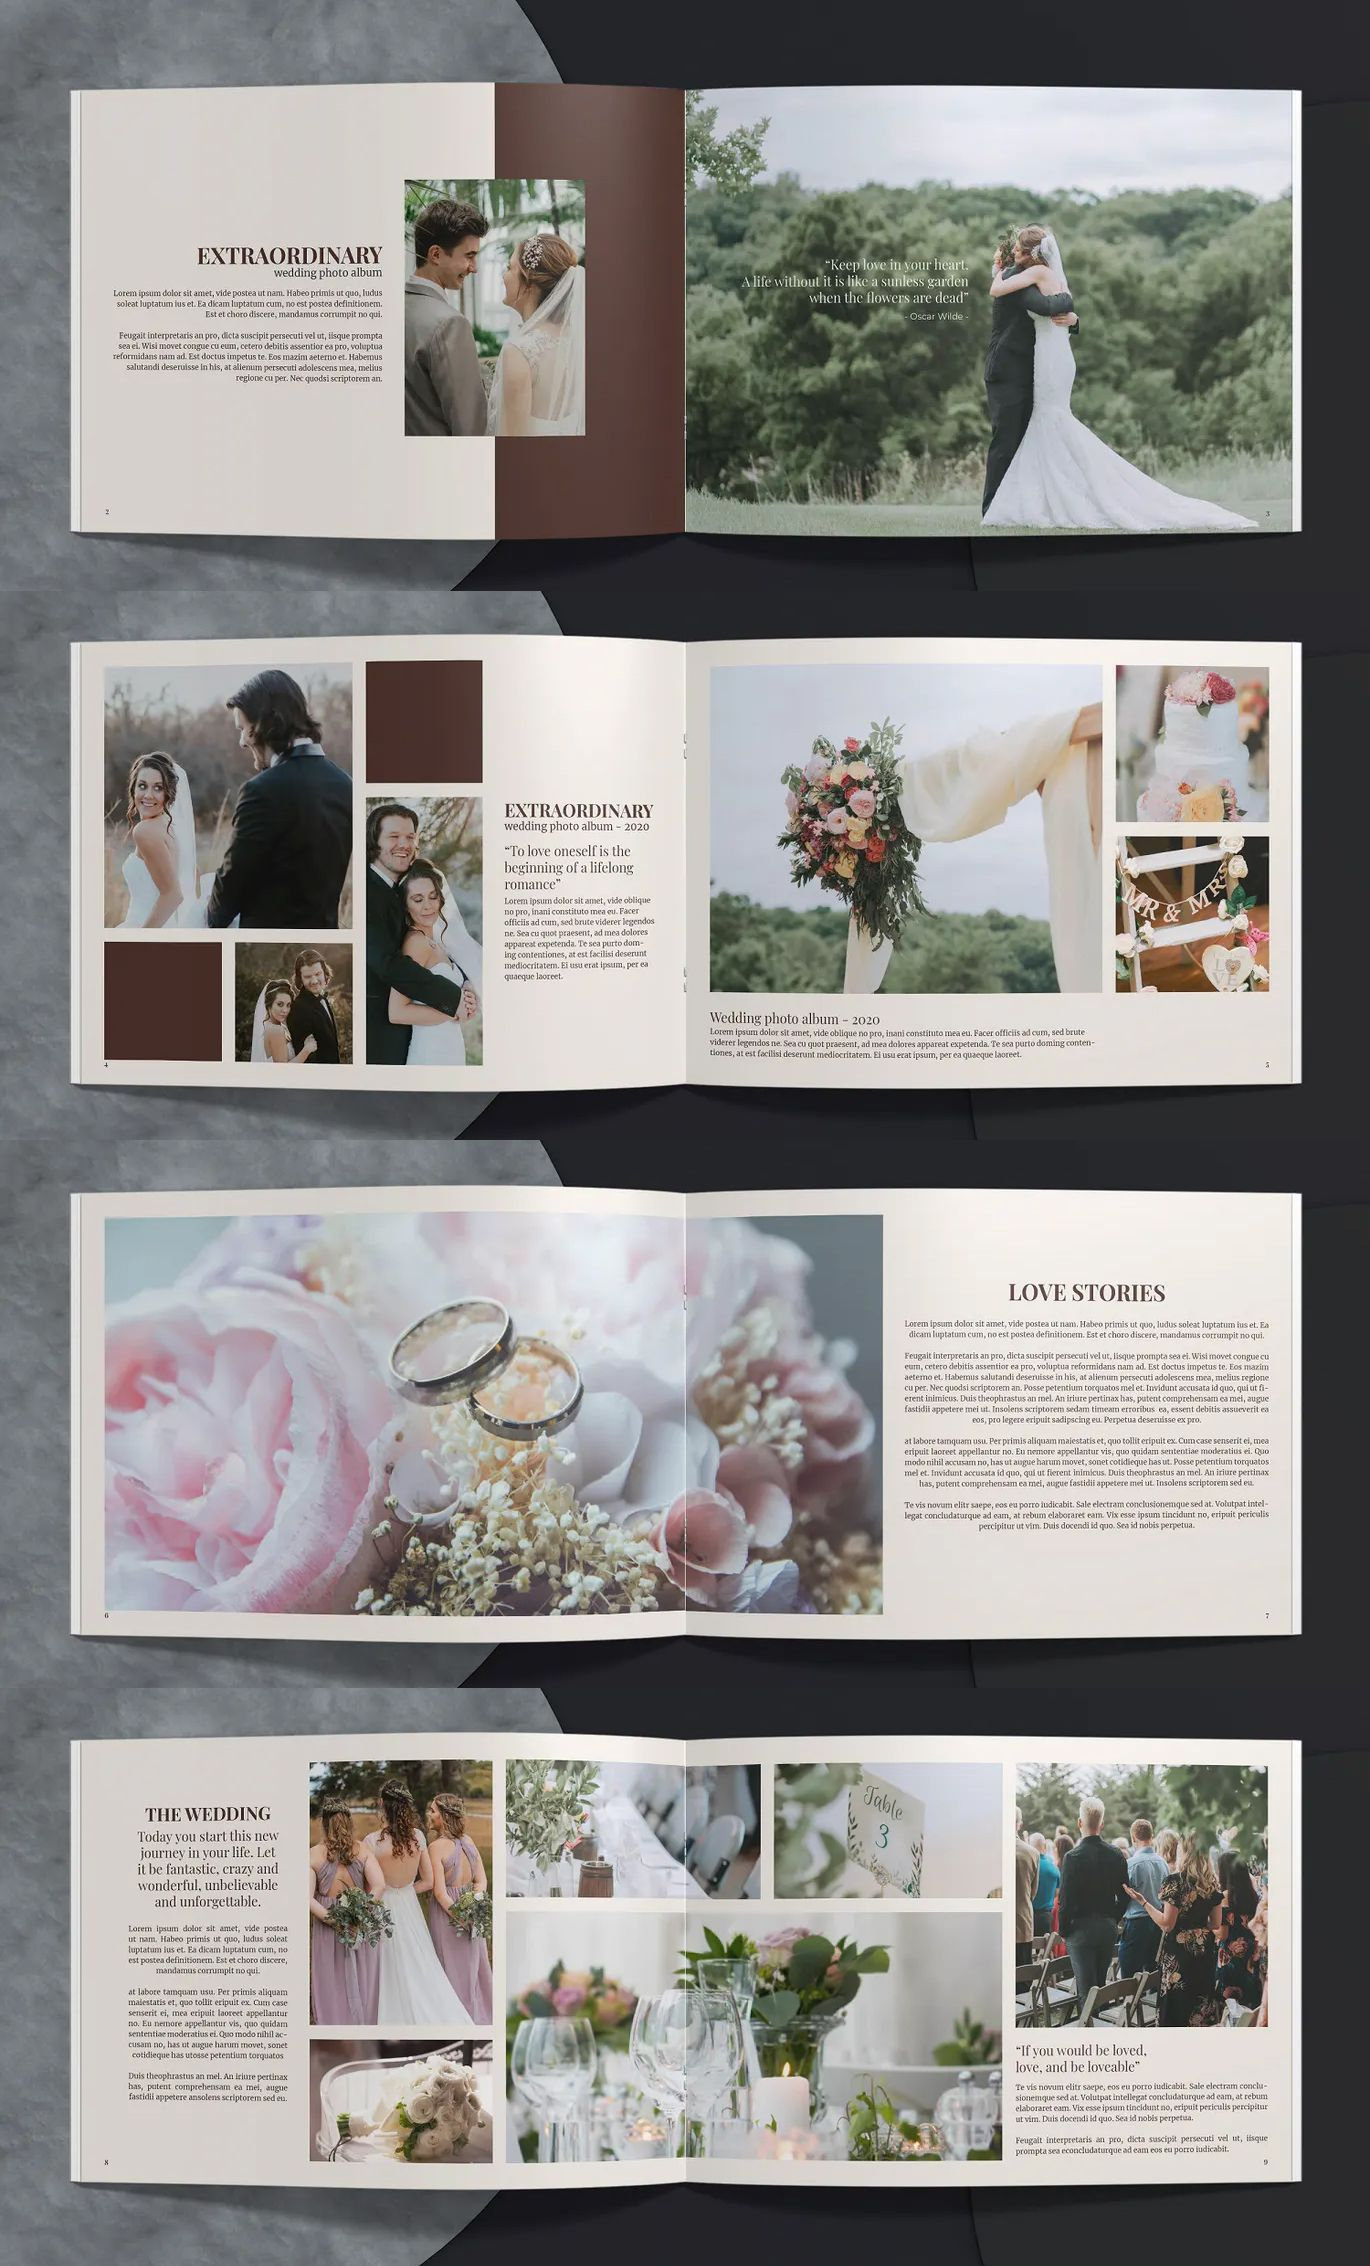 Wedding Album Template Indesign In 2020 Wedding Album Templates Photo Album Design Wedding Album